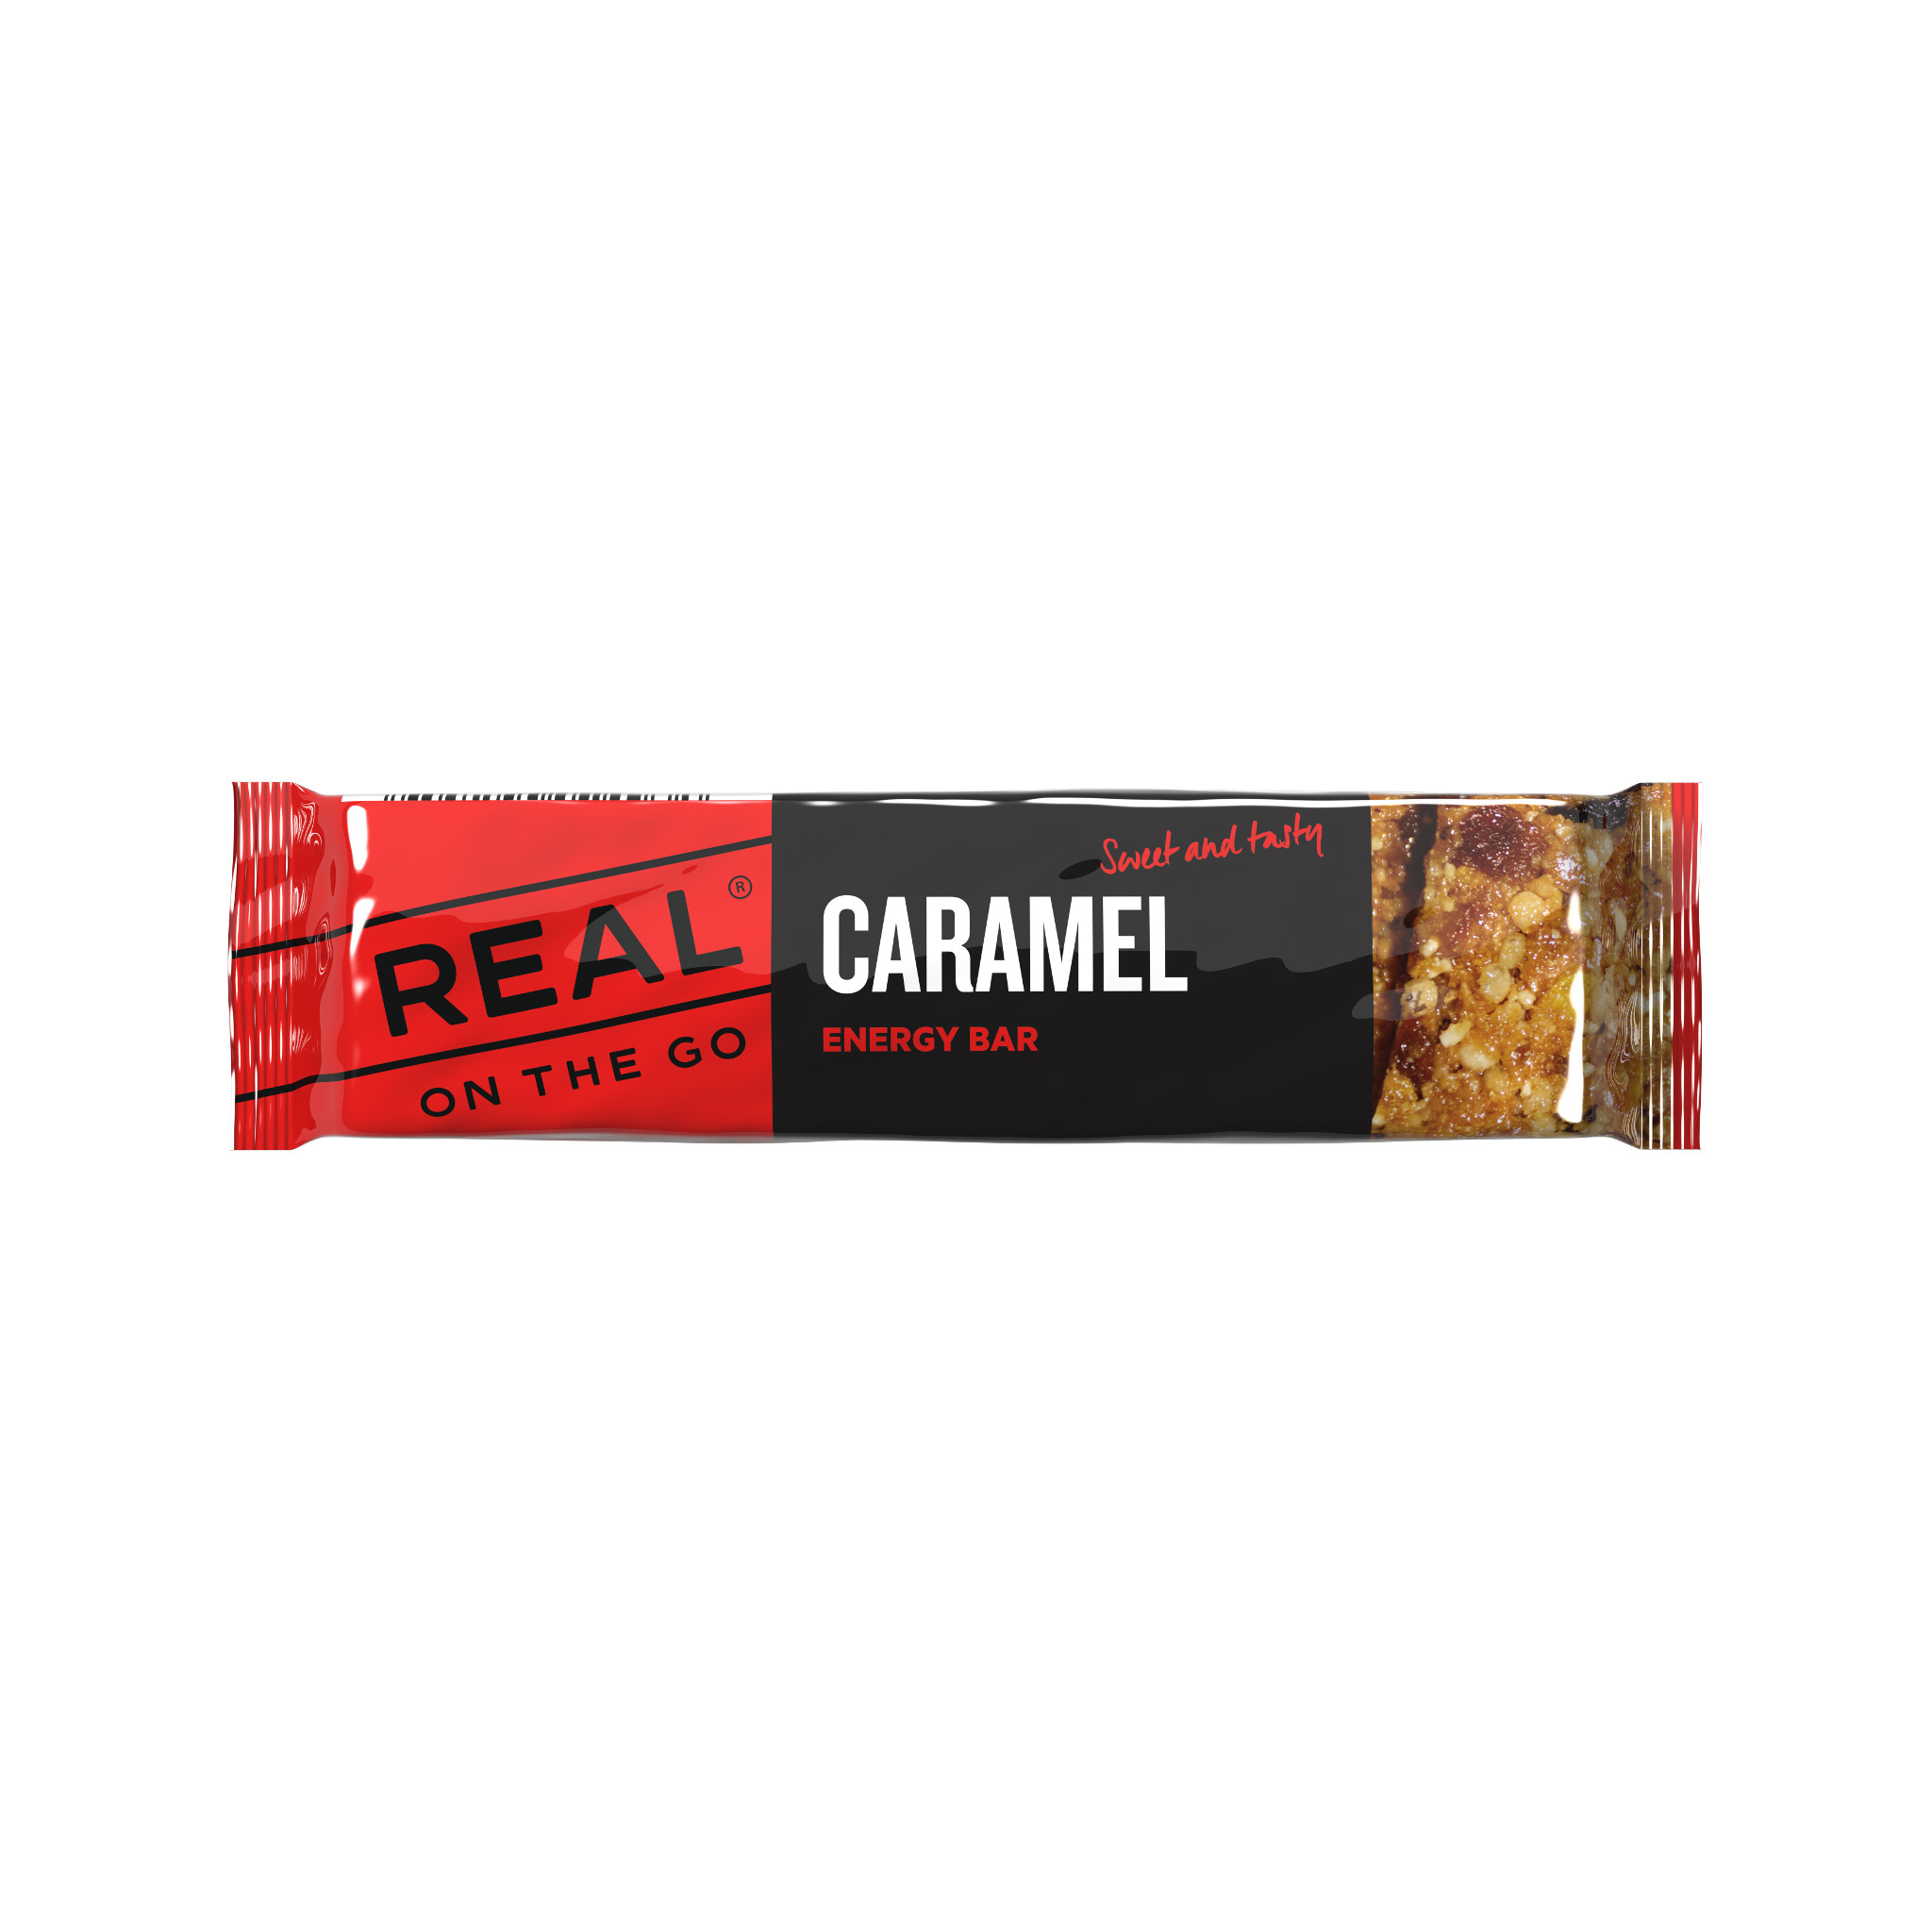 Real On the Go Caramel Energy Bar